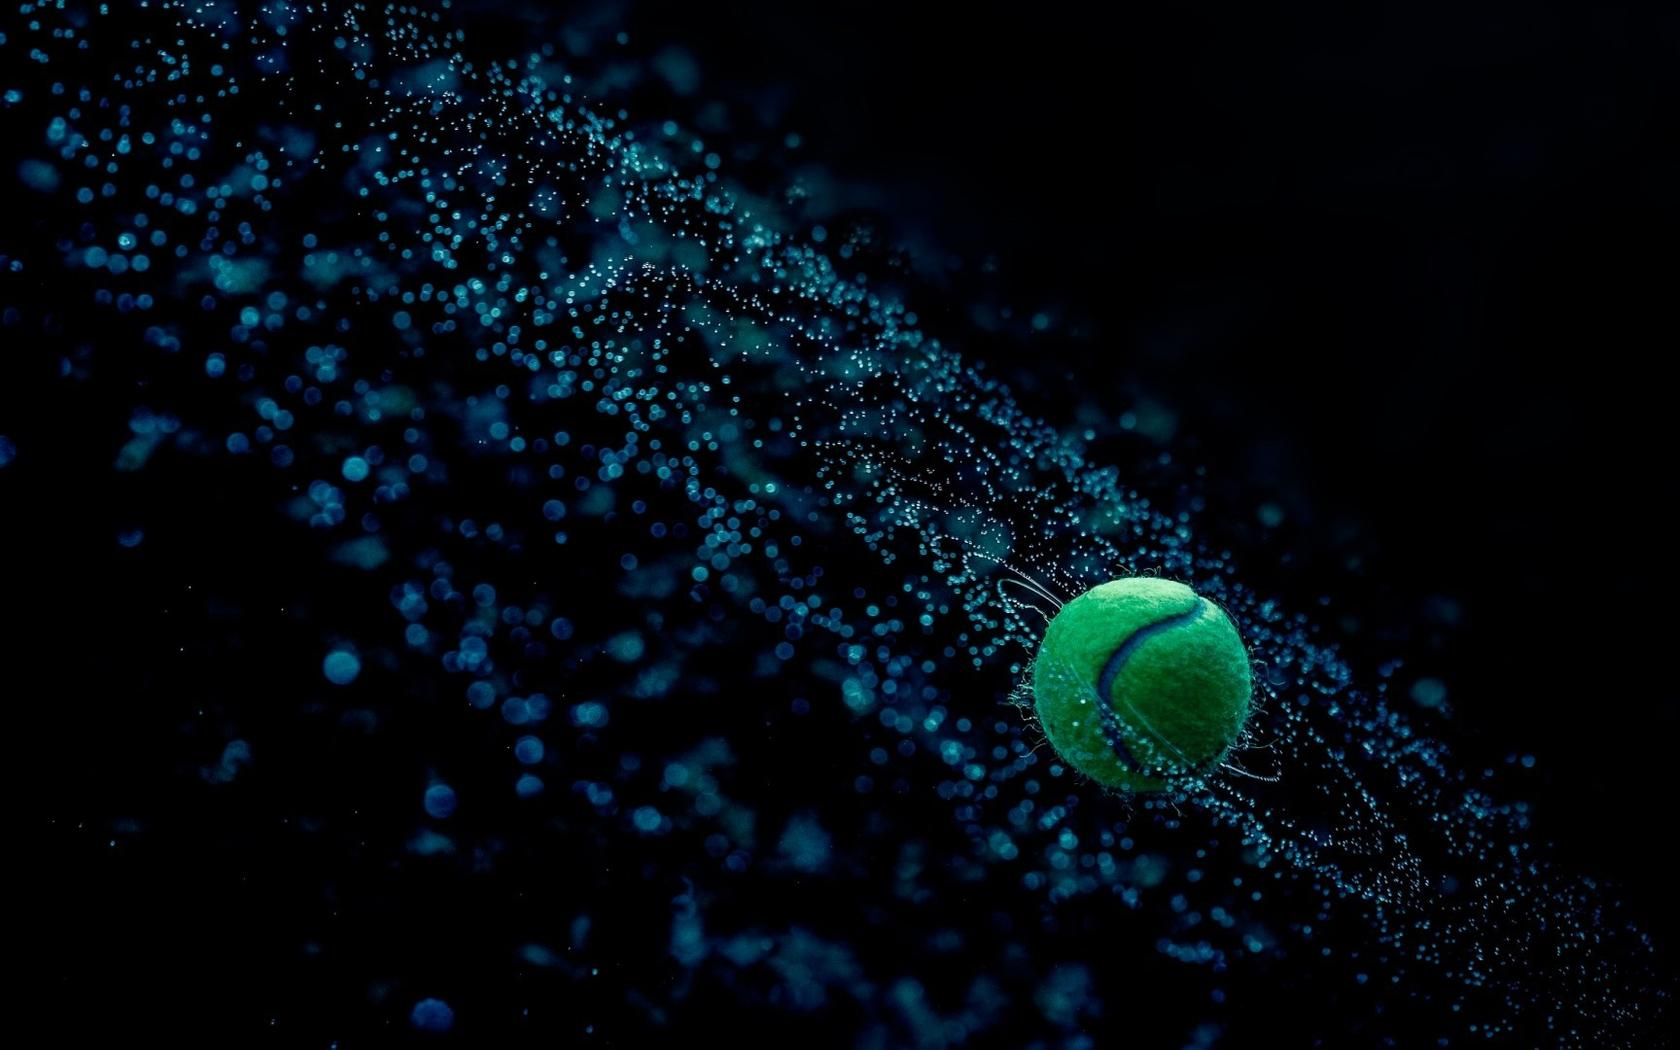 Fantasy Tennis Ball In Water